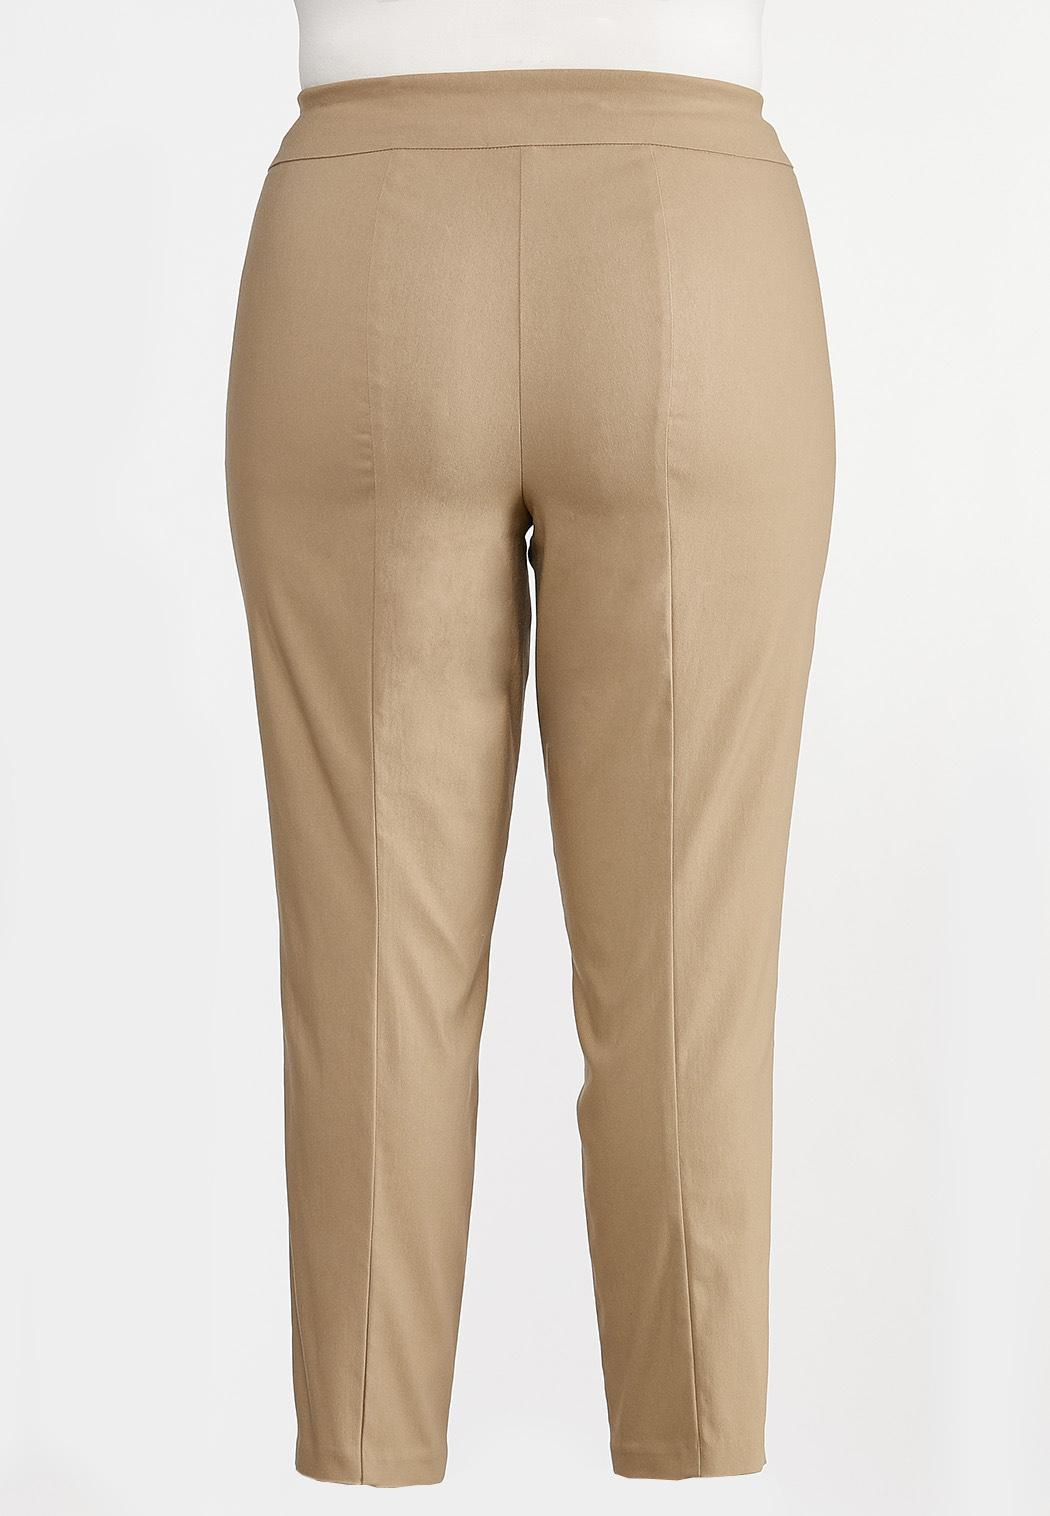 Plus Petite Soft Woven Slim Pants (Item #44296656)